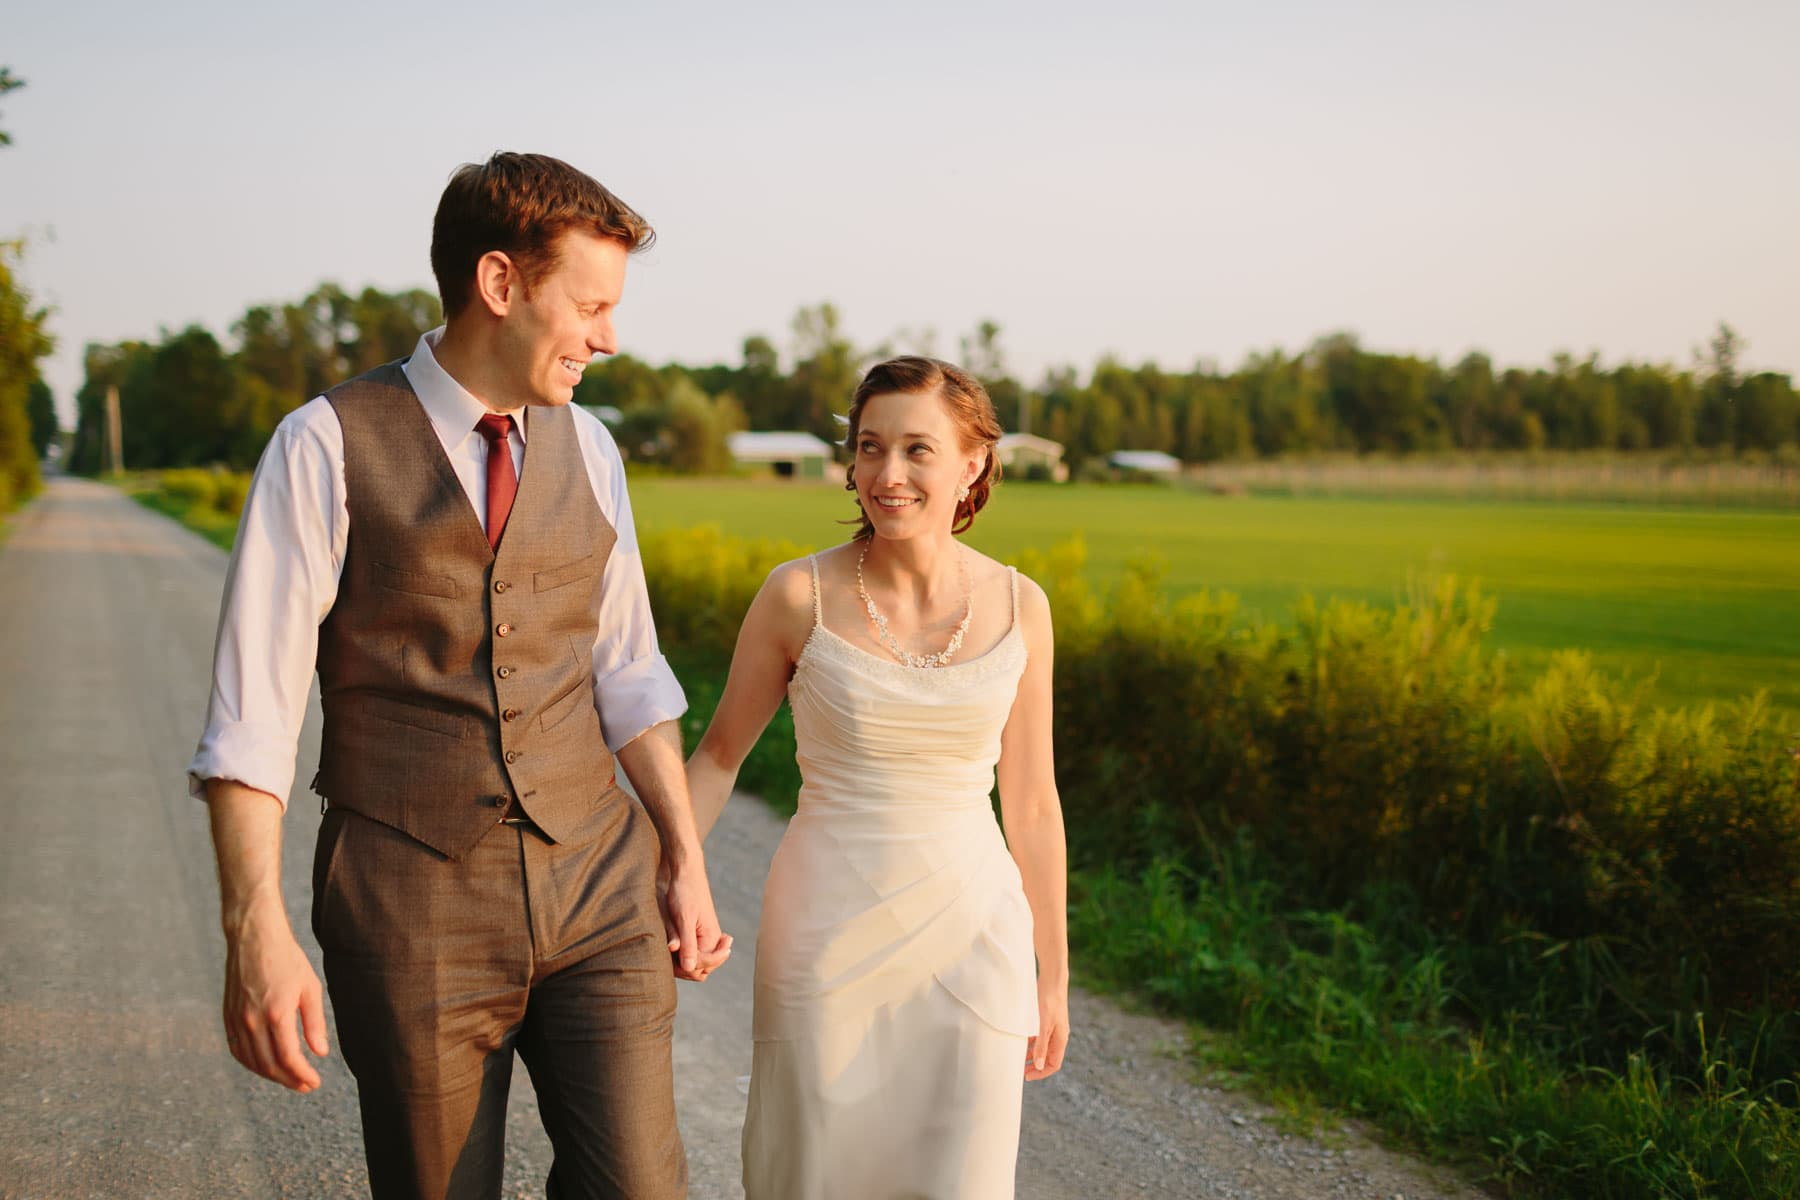 Bride and groom hold hands and look at each other as they walk down country road during sunset in these backyard wedding photos.